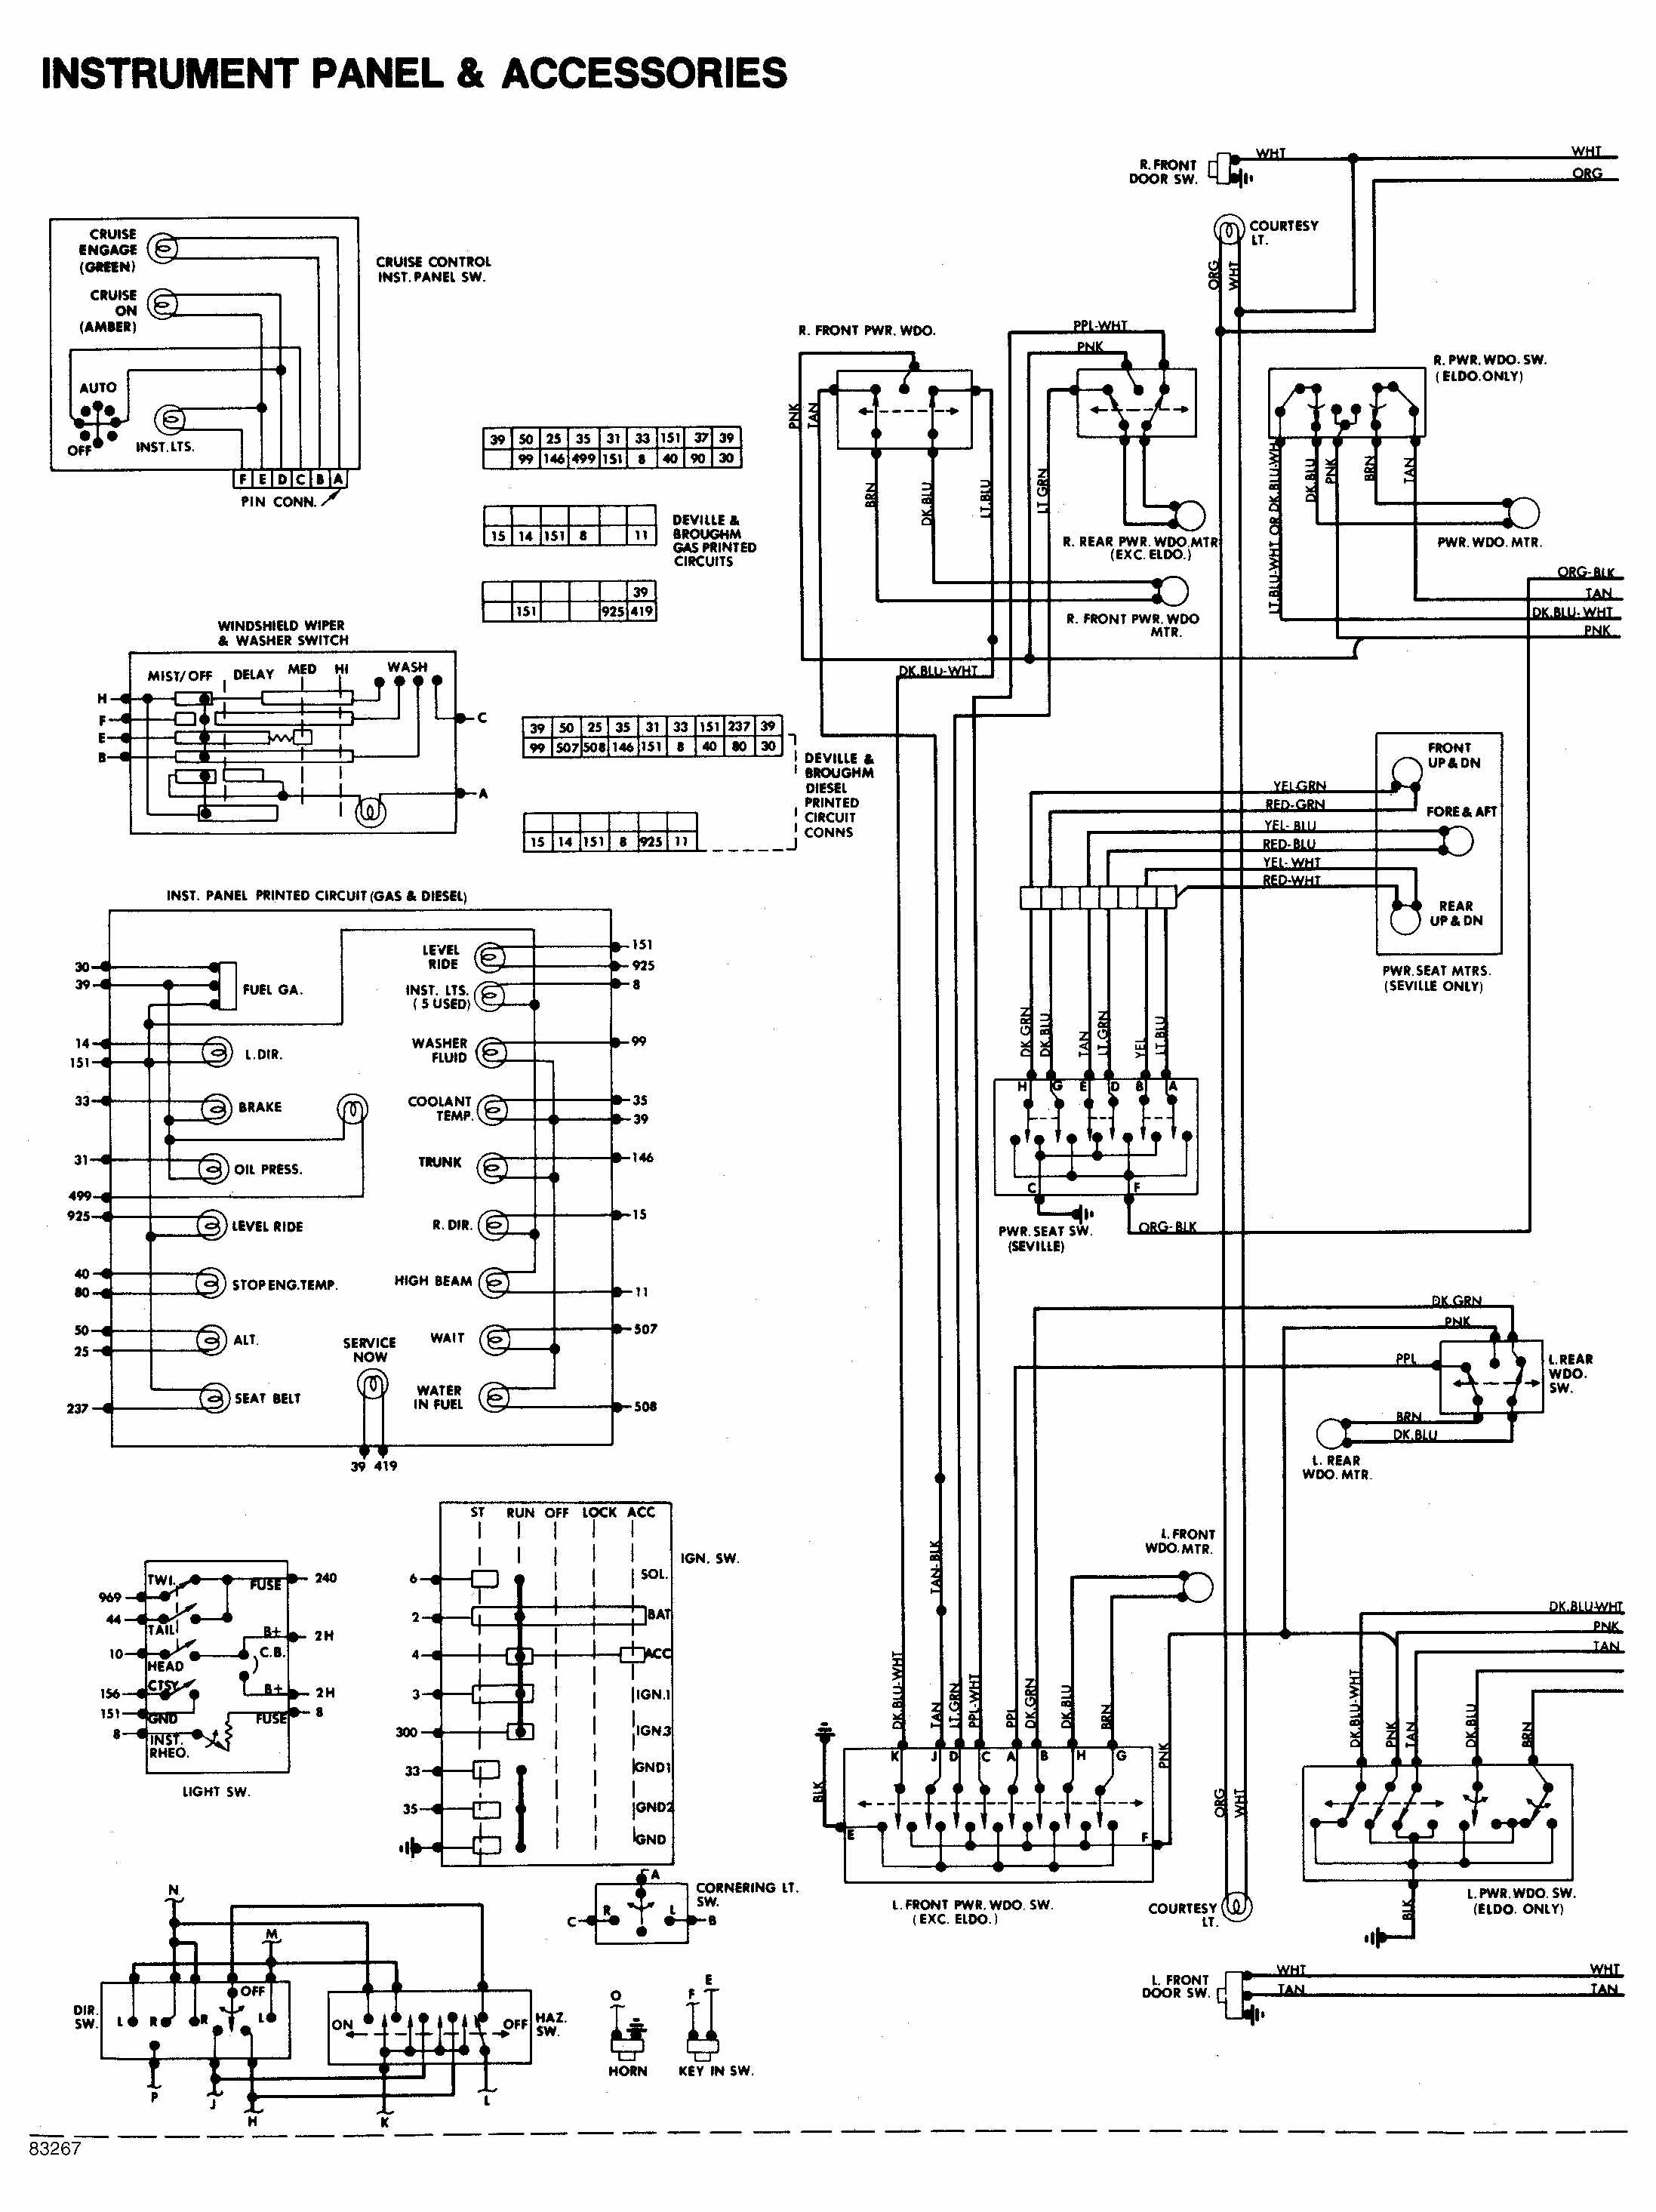 instrument panel and accessories wiring diagram of 1984 cadillac deville 1984 corvette wiring diagram free 1986 corvette wiring diagrams 1998 corvette wiring diagram at et-consult.org